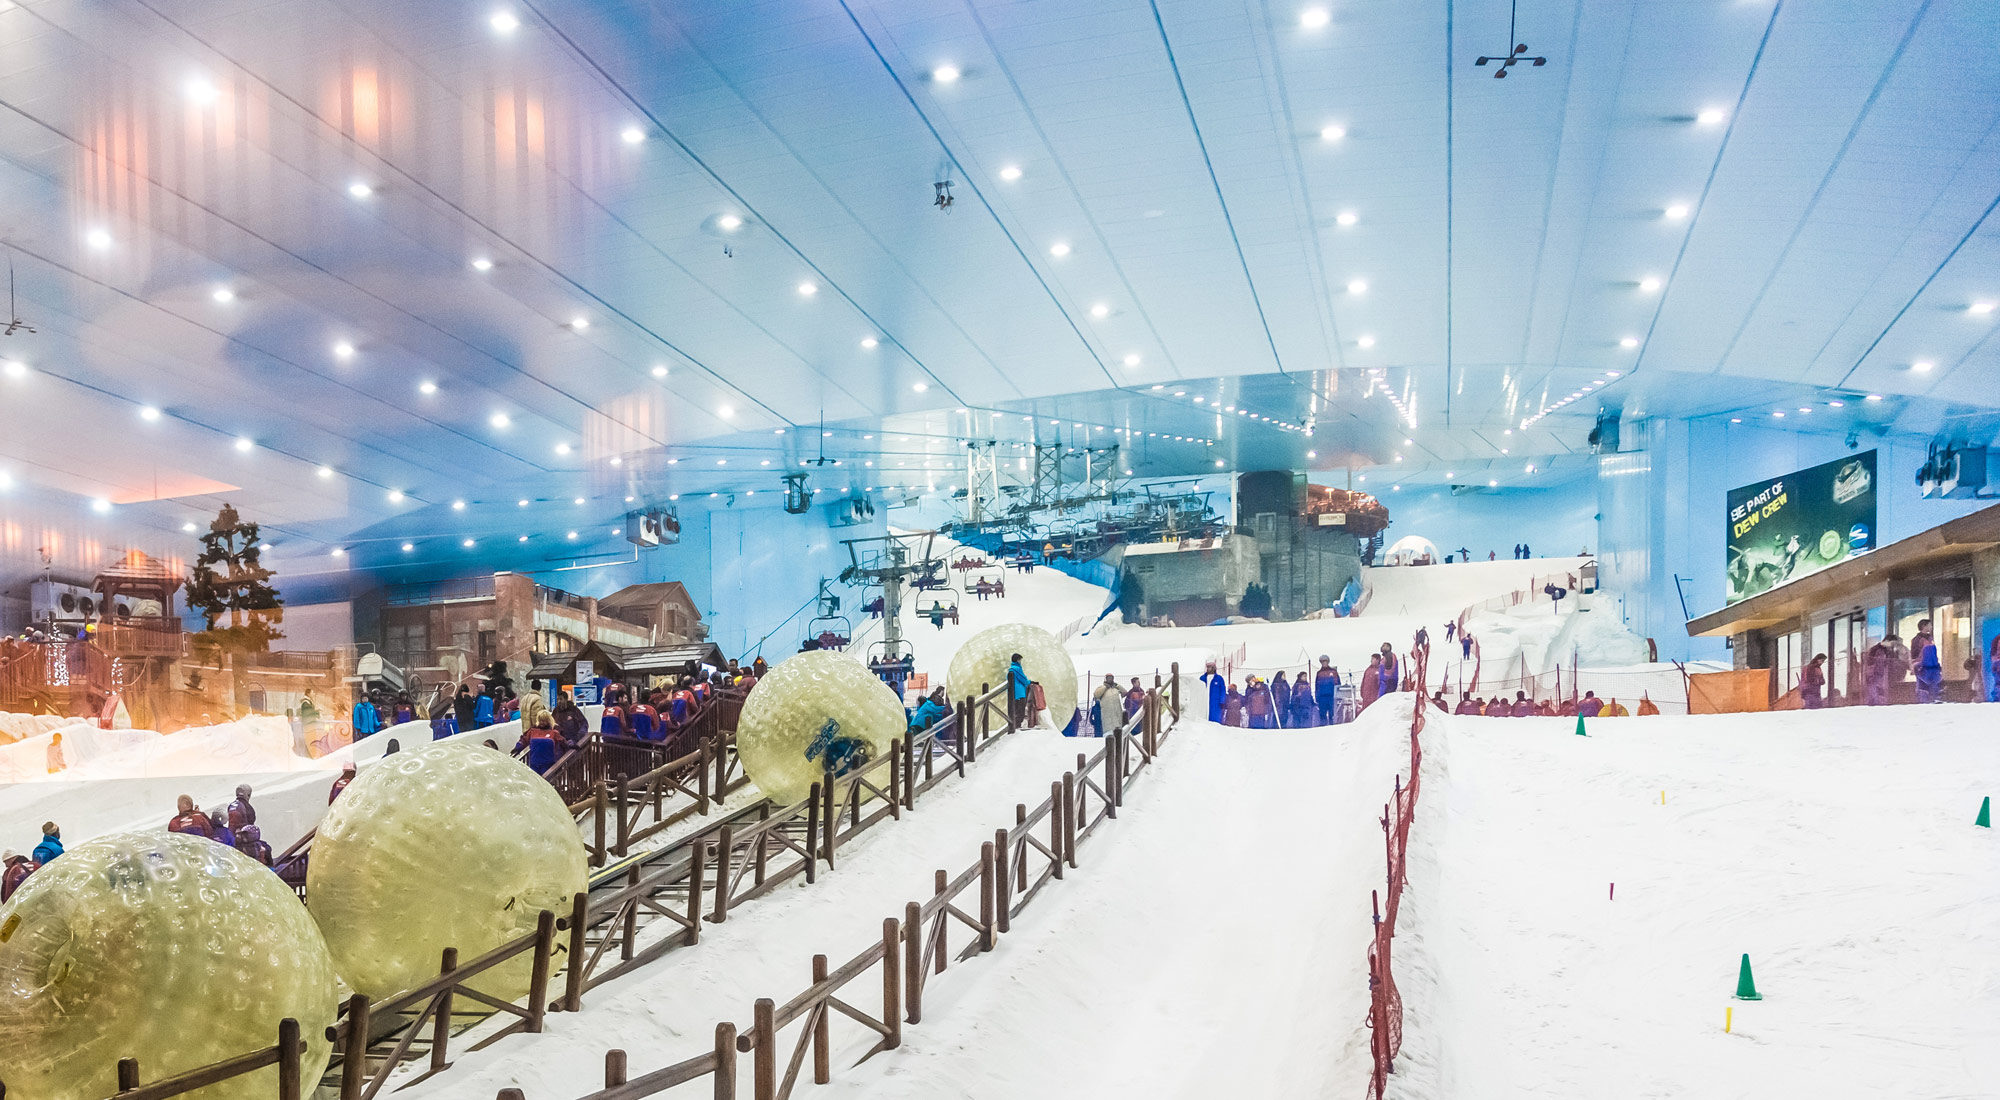 beautiful view of ski dubai from inside